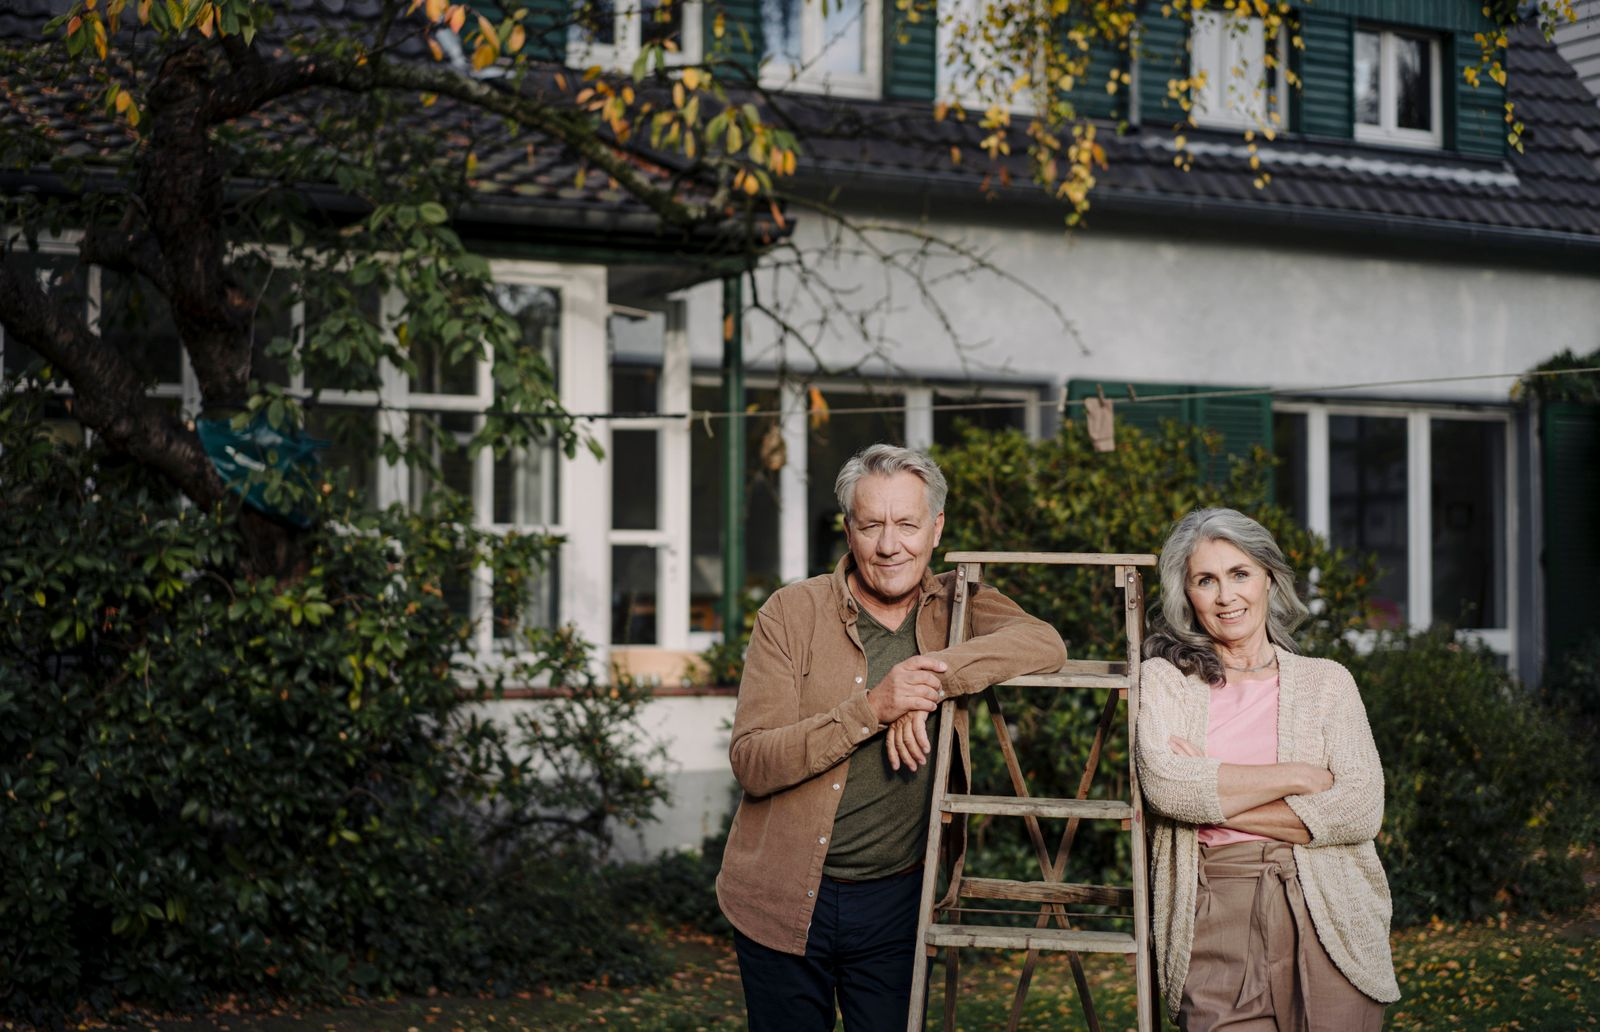 Portrait of senior couple with a ladder in garden of their home model released Symbolfoto property released PUBLICATIONx